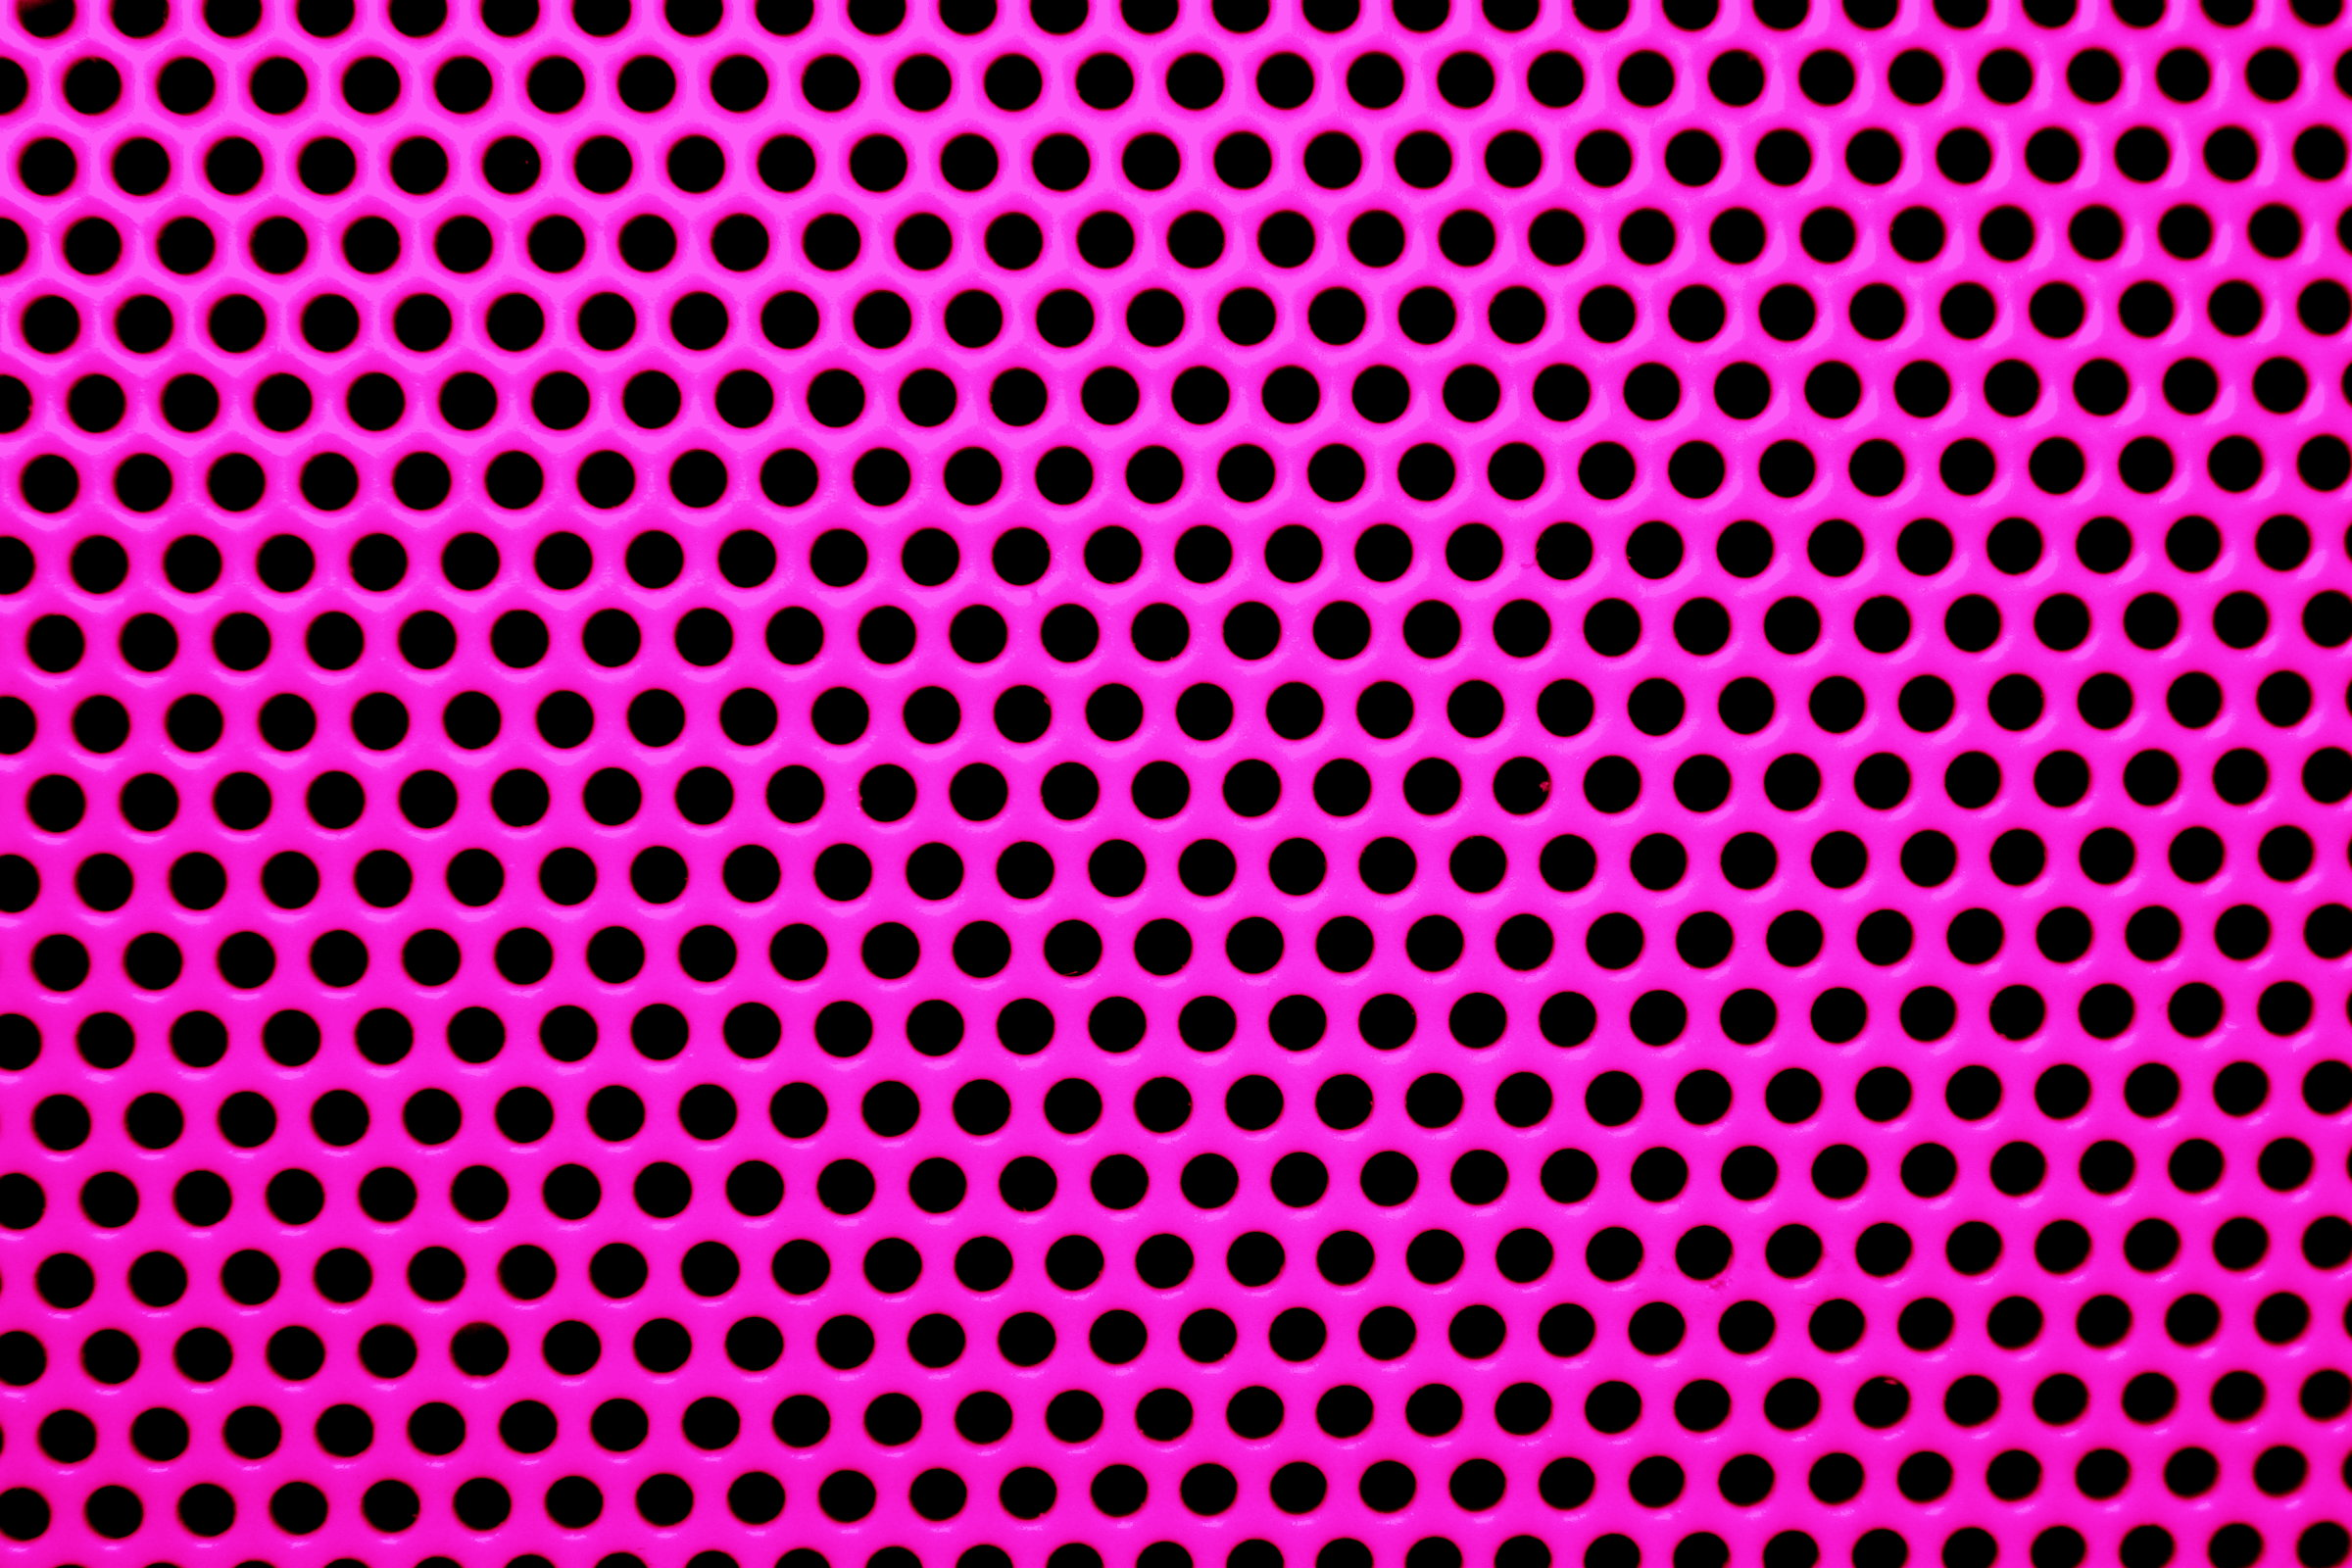 Fuchsia Hot Pink Metal Mesh With Round Holes Texture